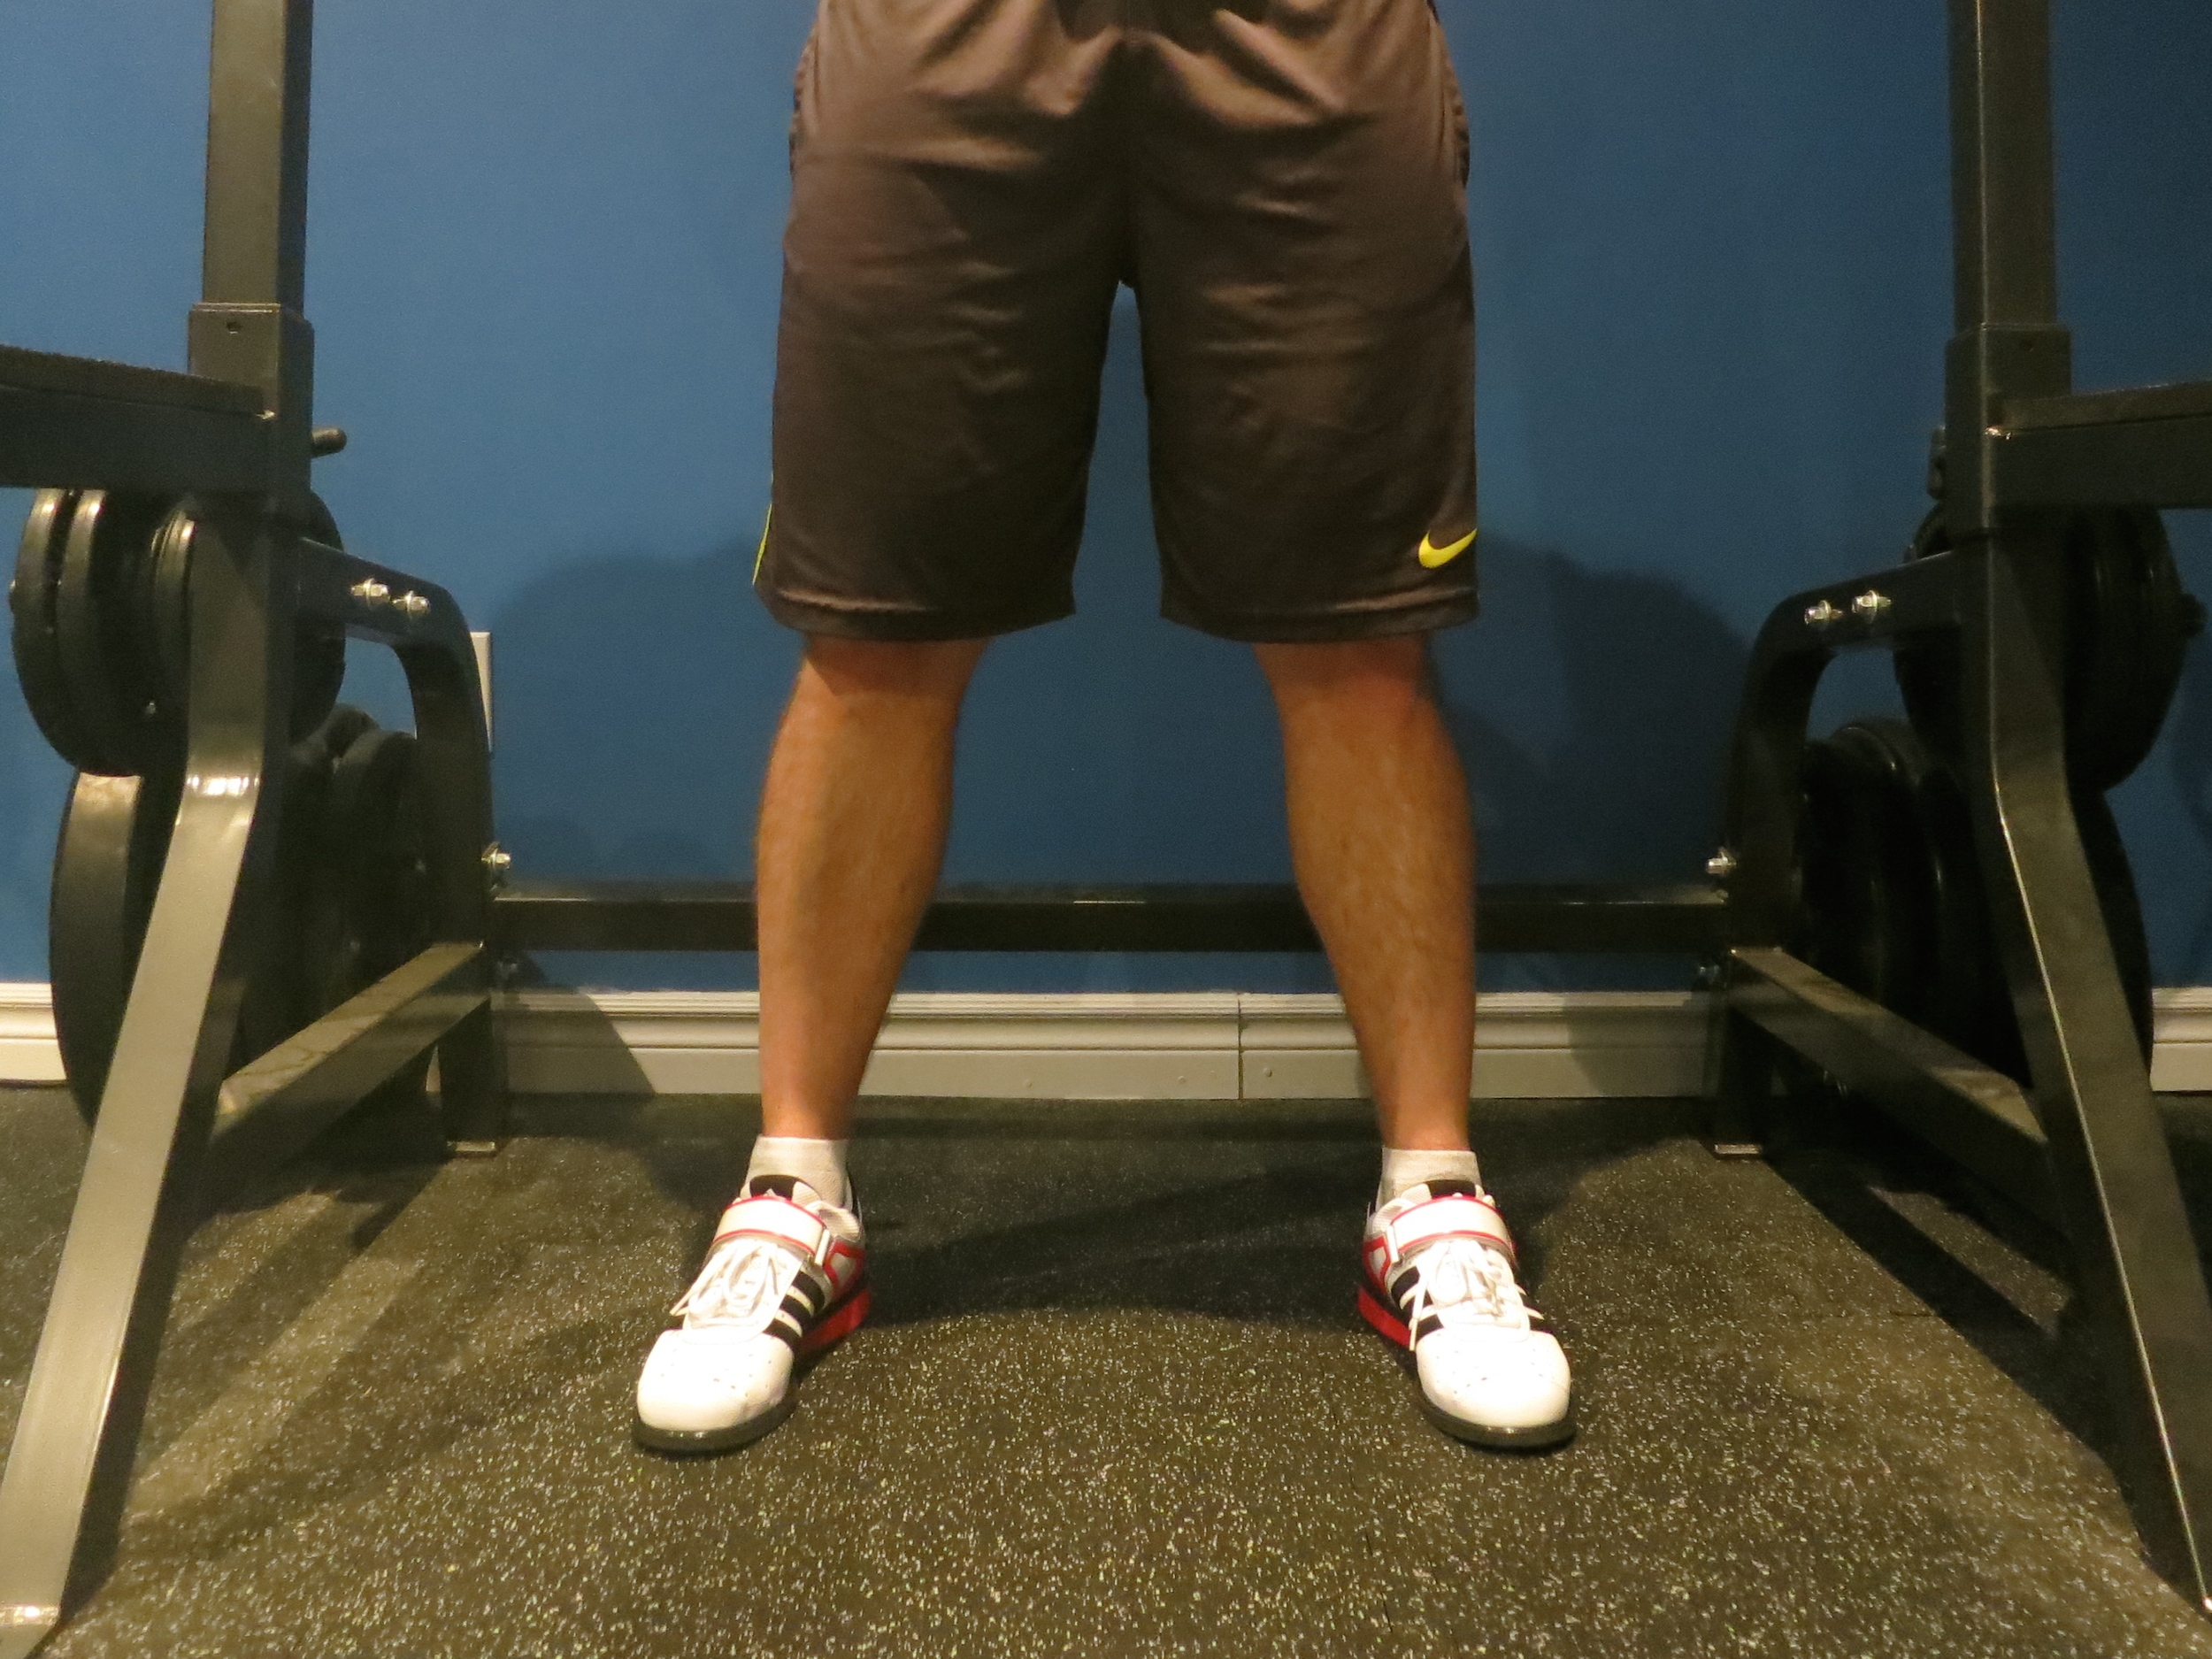 Stand with feet shoulder-width apart. Toes are turned out slightly.